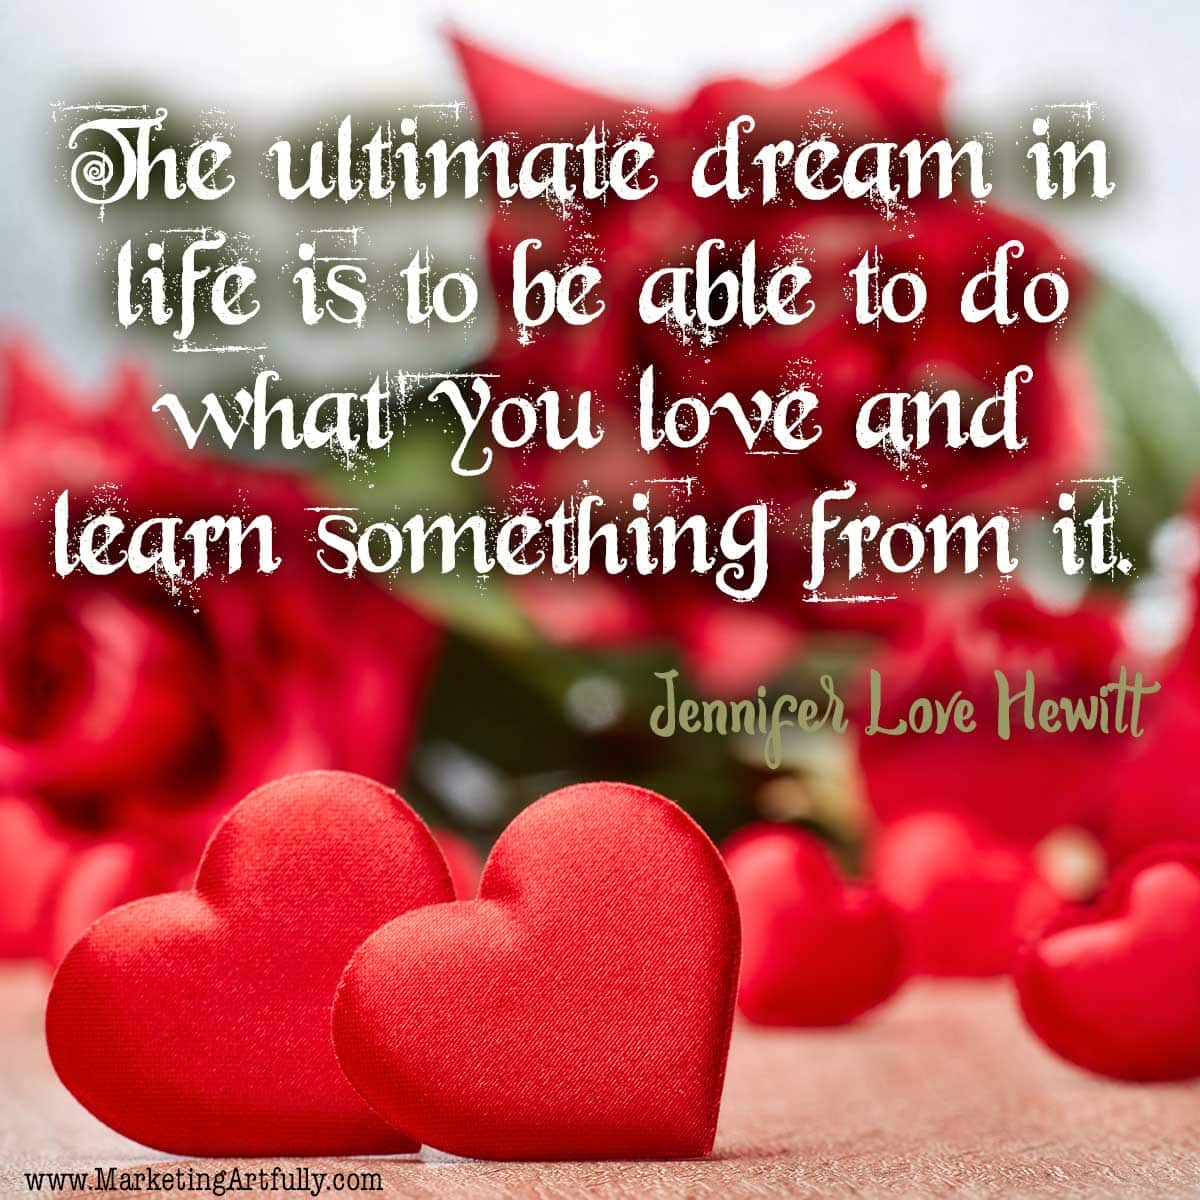 The ultimate dream in life is to be able to do what you love and learn something from it. Jennifer Love Hewitt